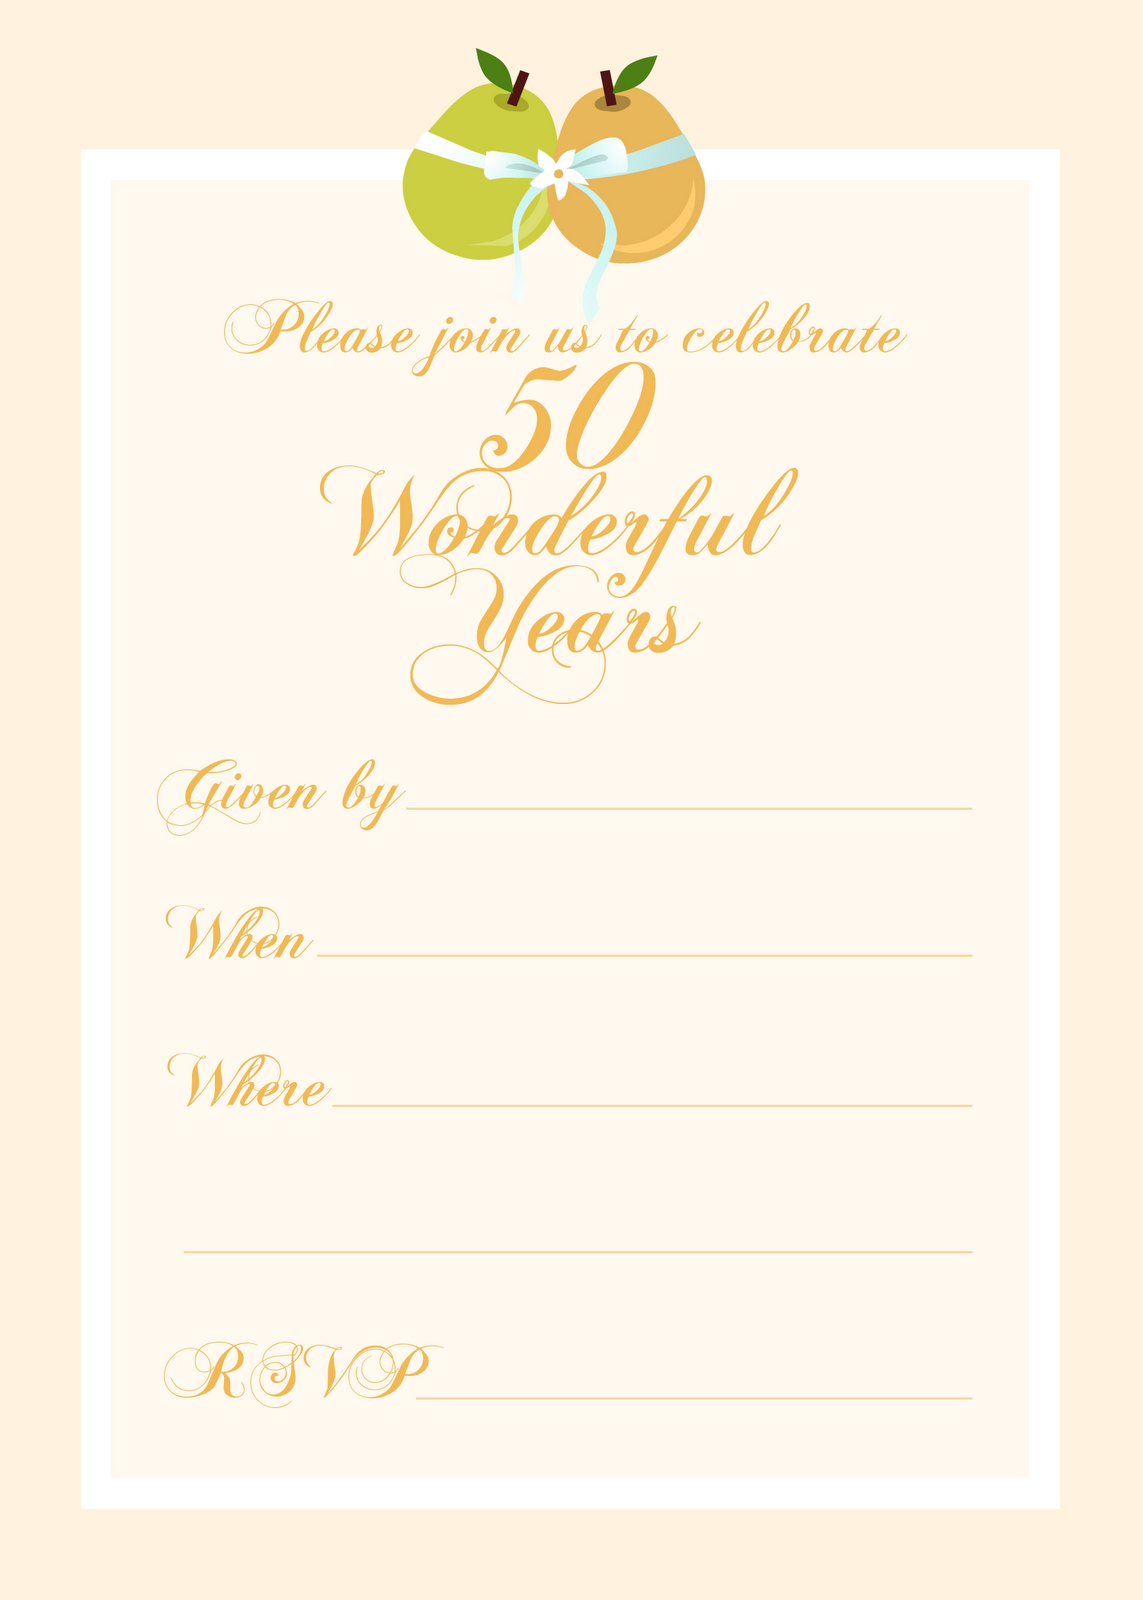 Free Printable 50 Year Anniversary Party Invitation   Free Printable - Free Printable 40Th Anniversary Invitations